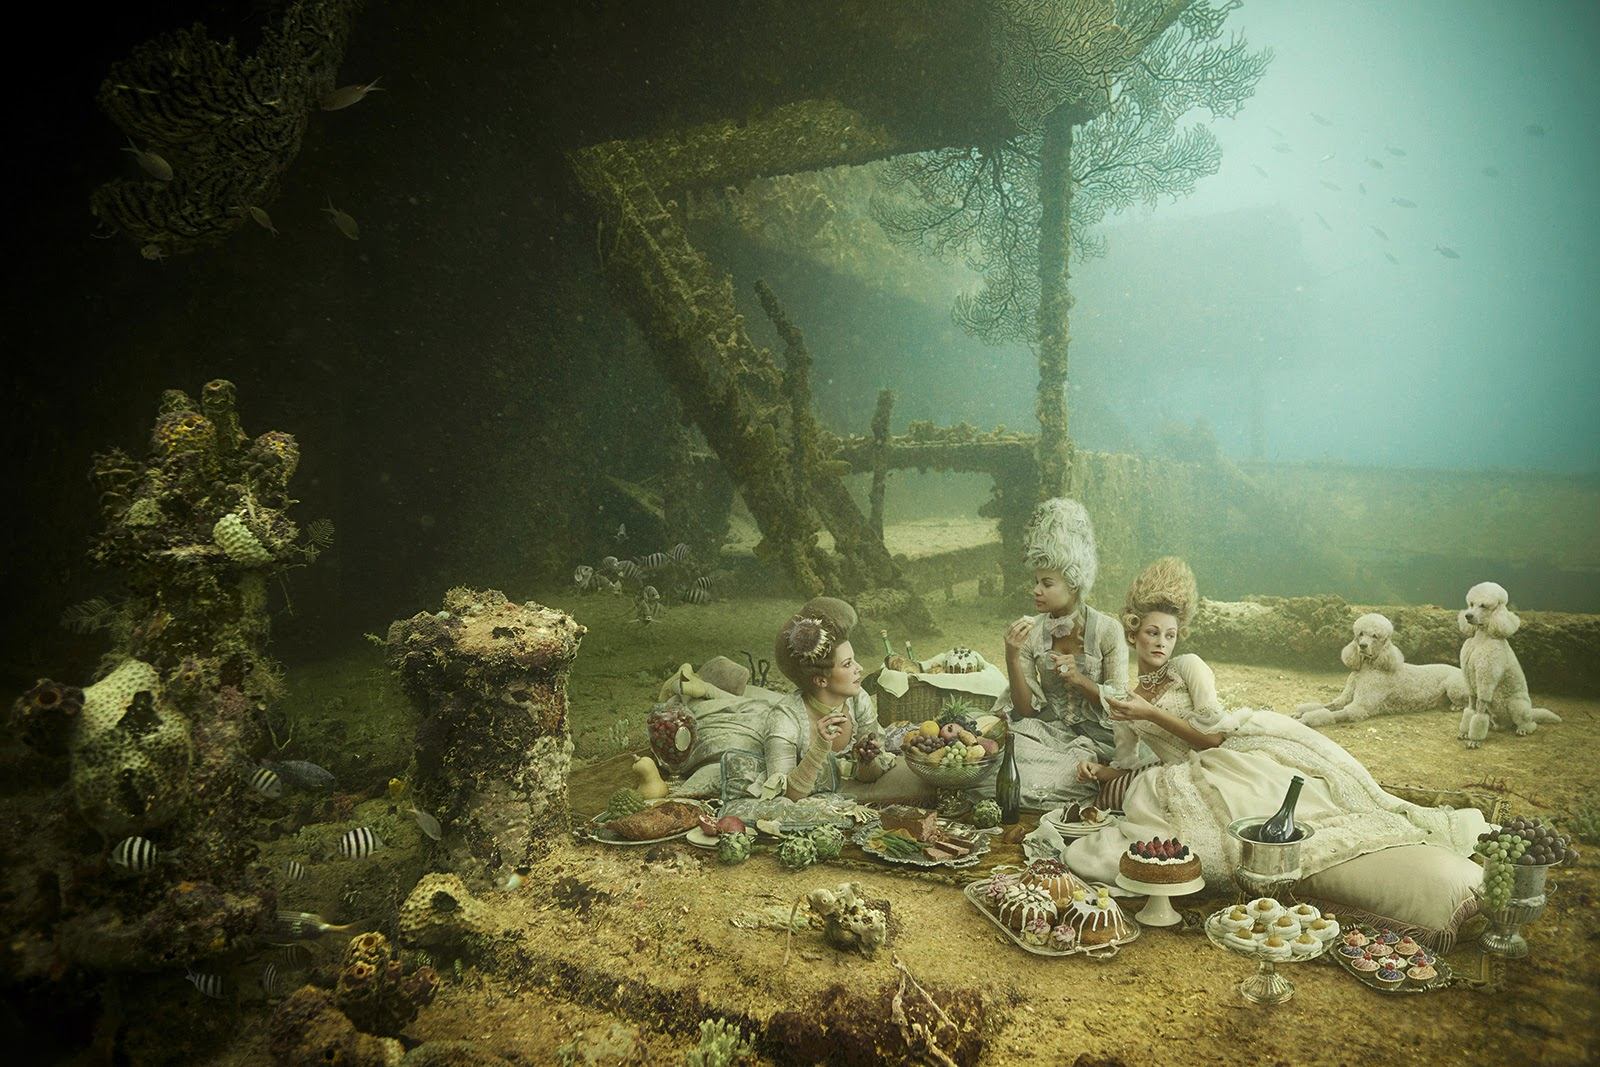 11-Andreas-Franke-Surreal-Artificial-Reef-Photography-www-designstack-co